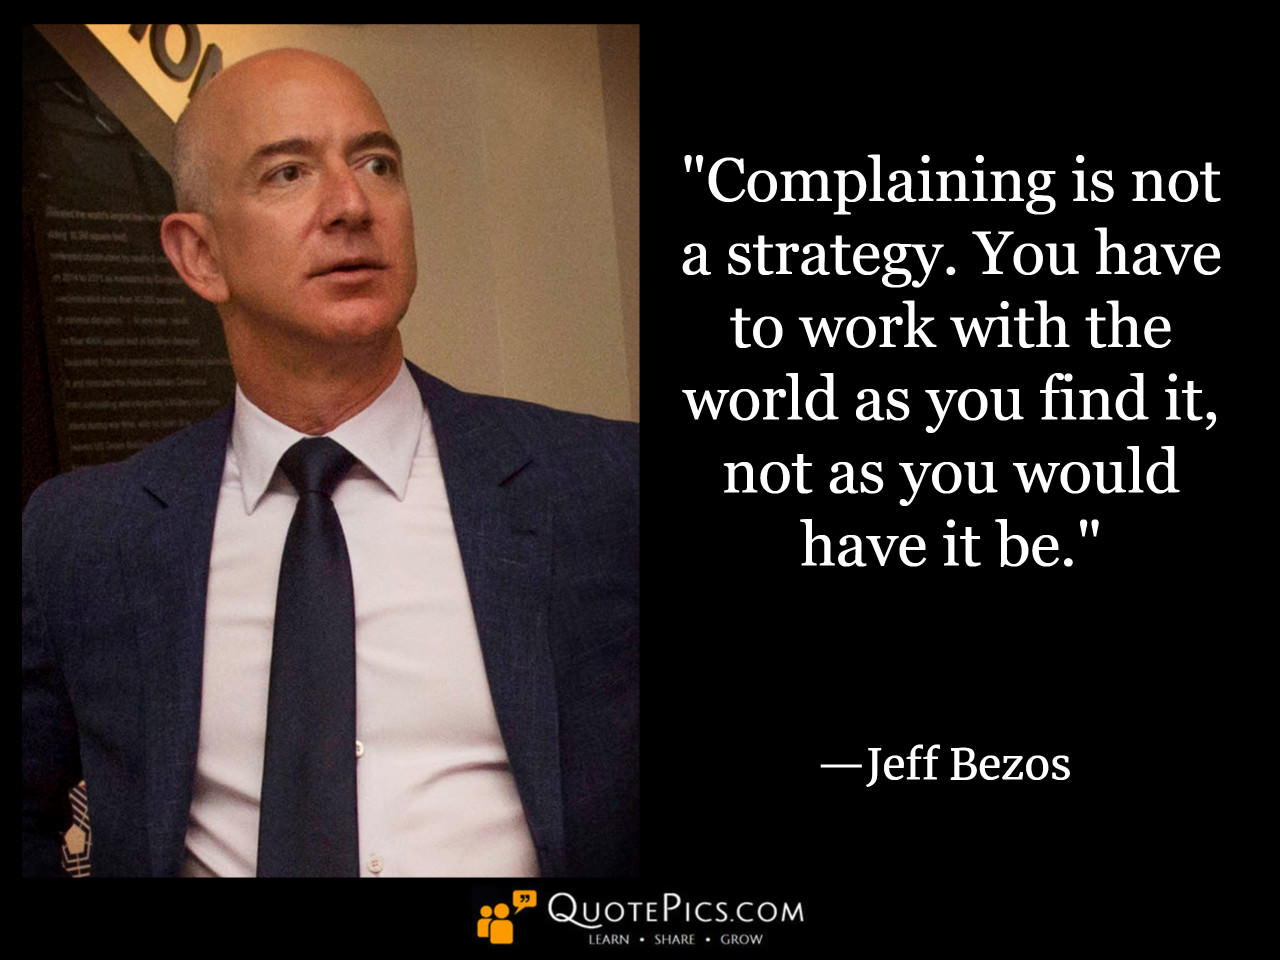 [Image] Bezos has a point in here!